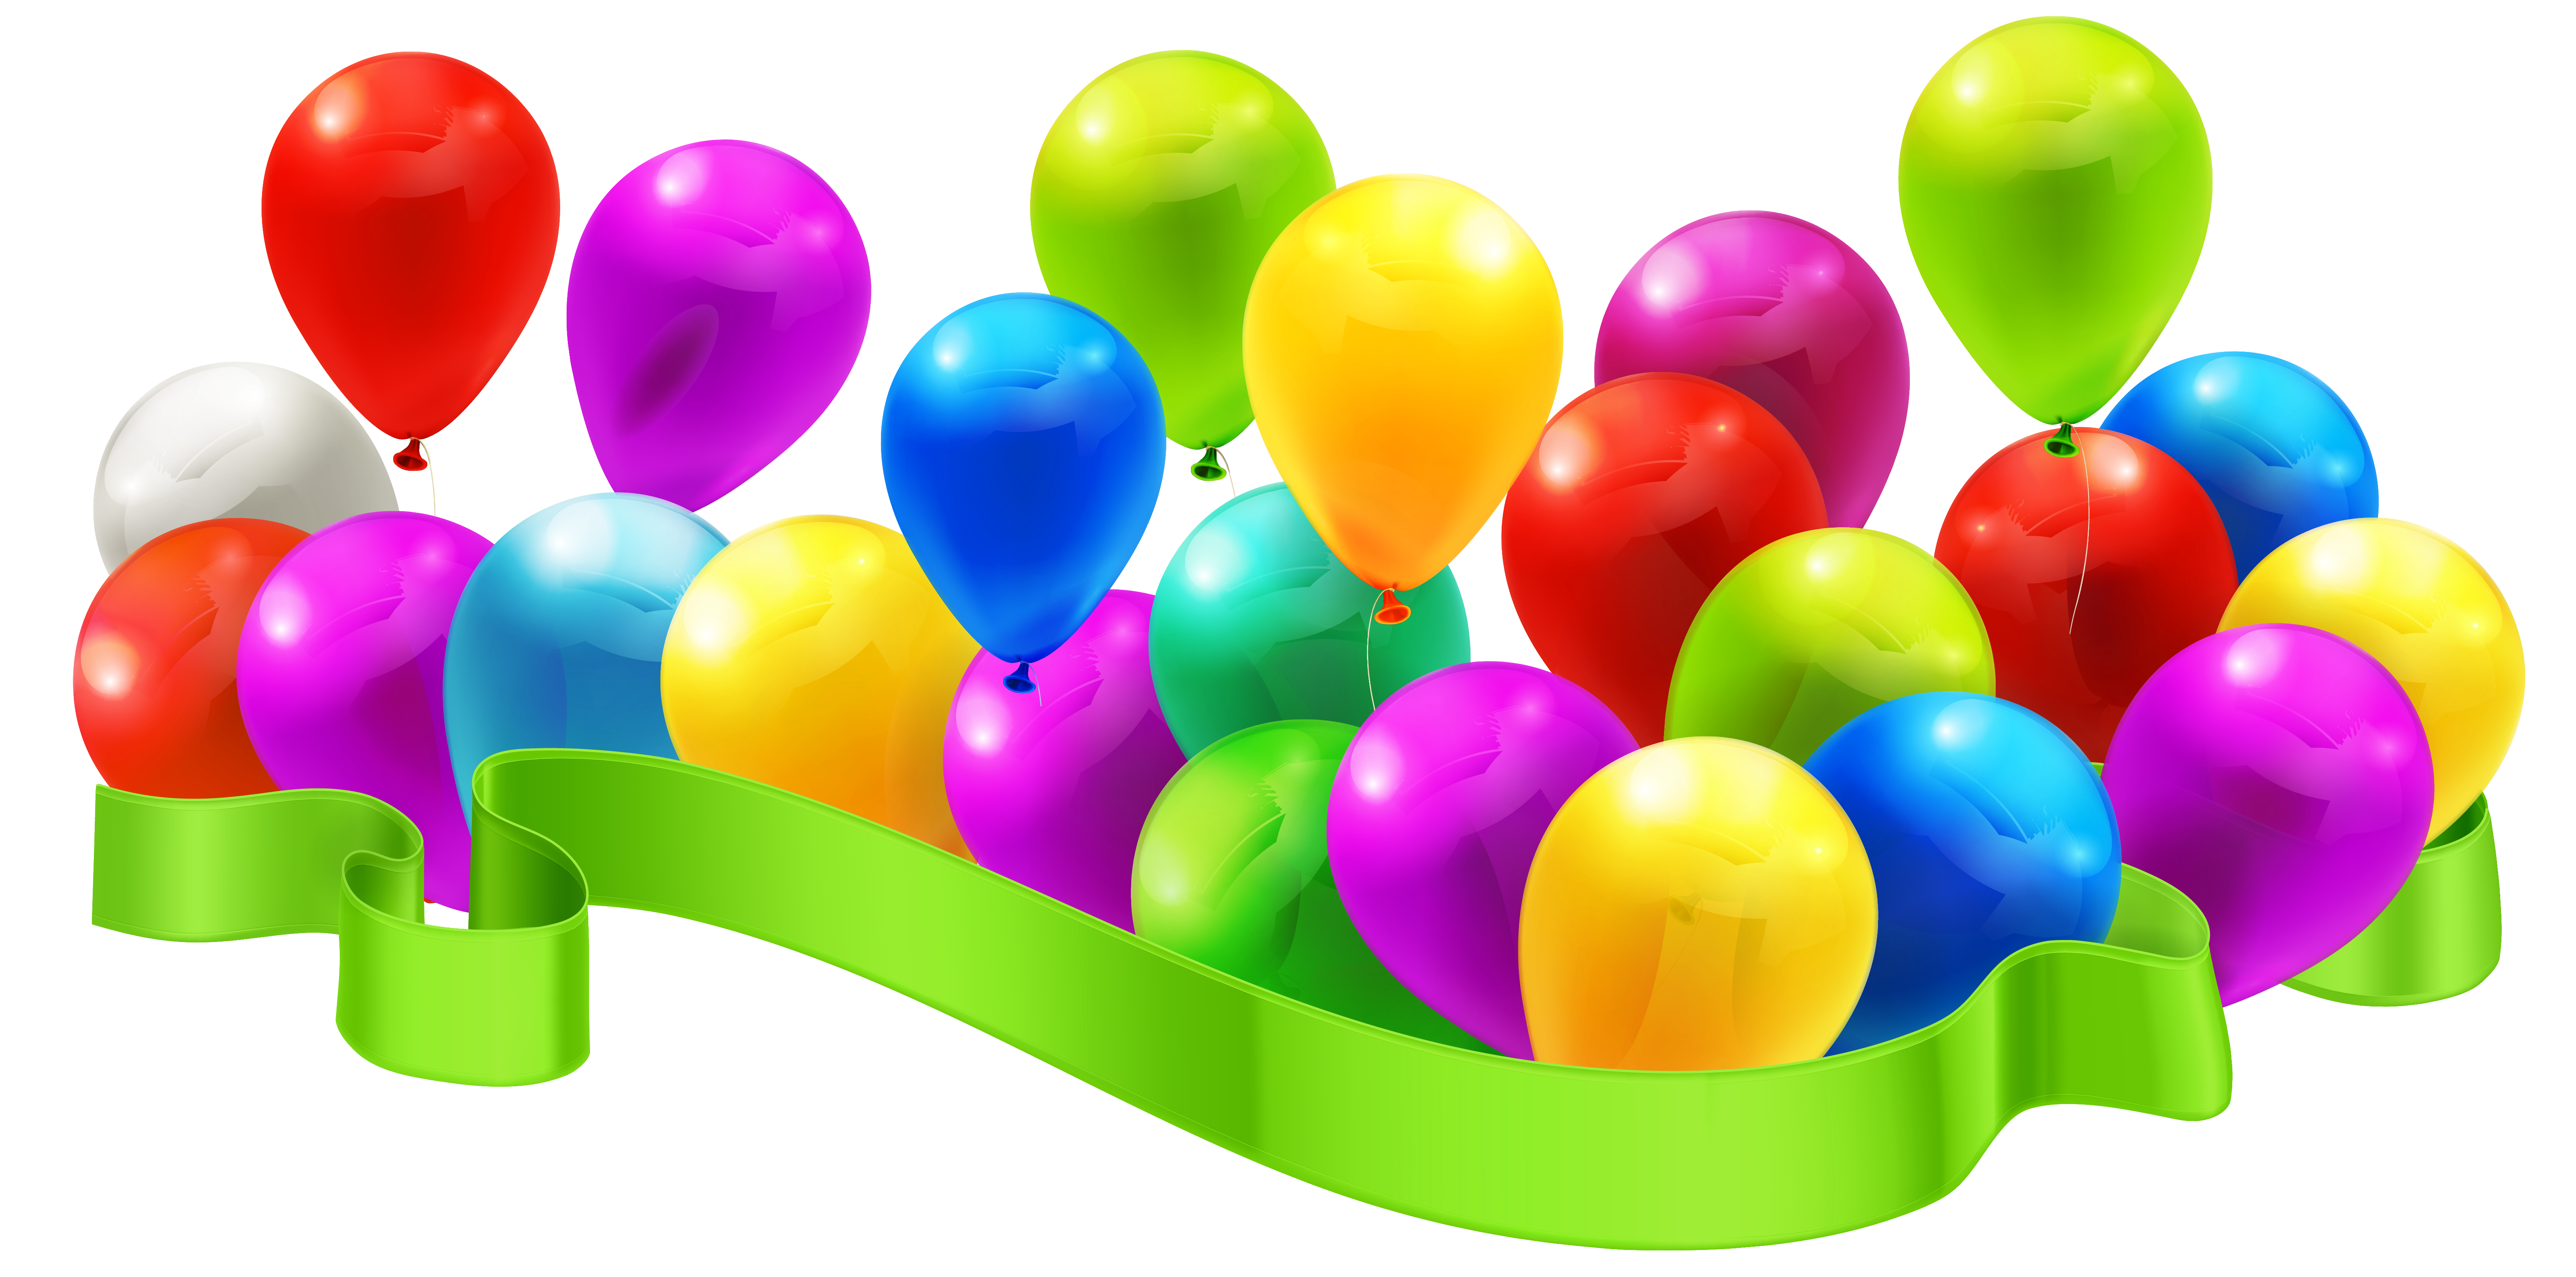 Balloon decoration png image. Gate clipart easter